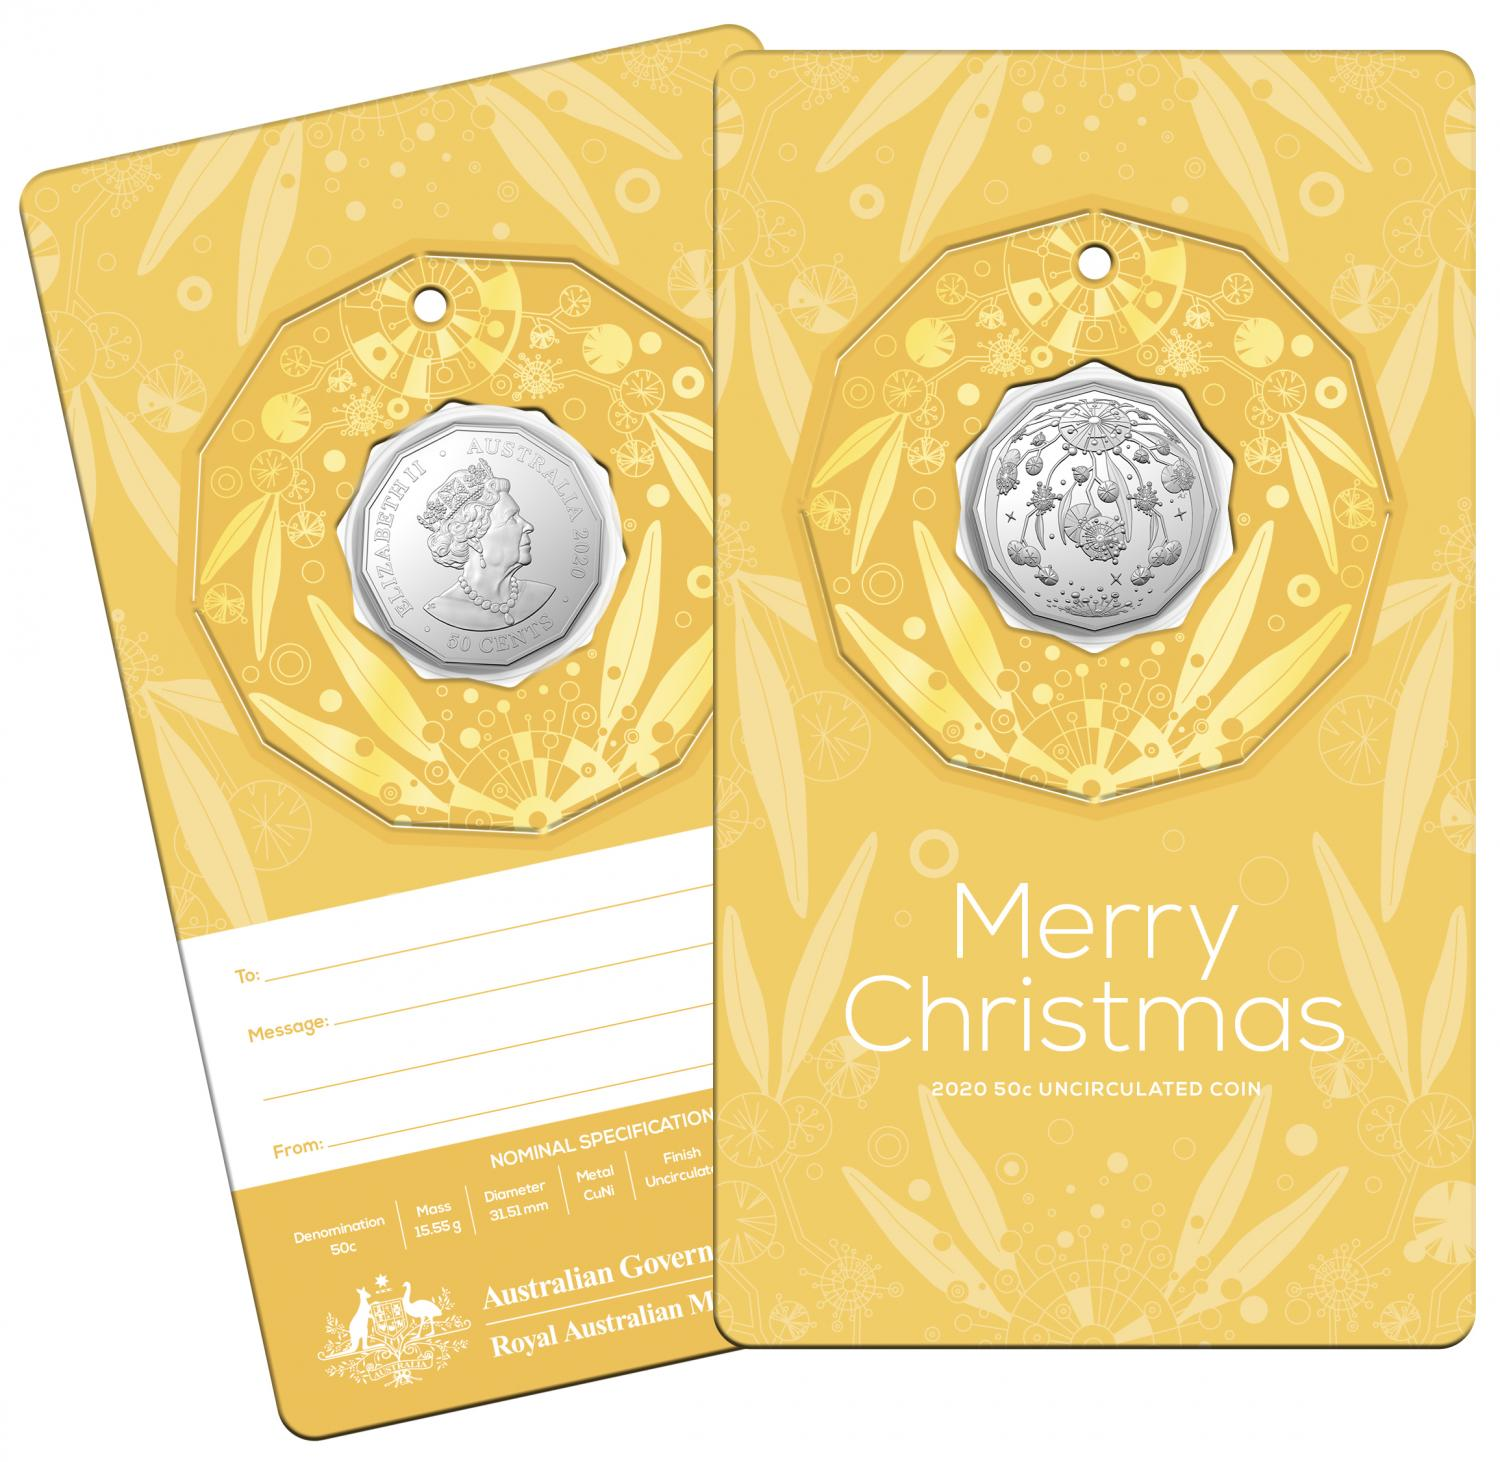 Thumbnail for 2020 Christmas .50c UNC Coin - Yellow Card Decoration